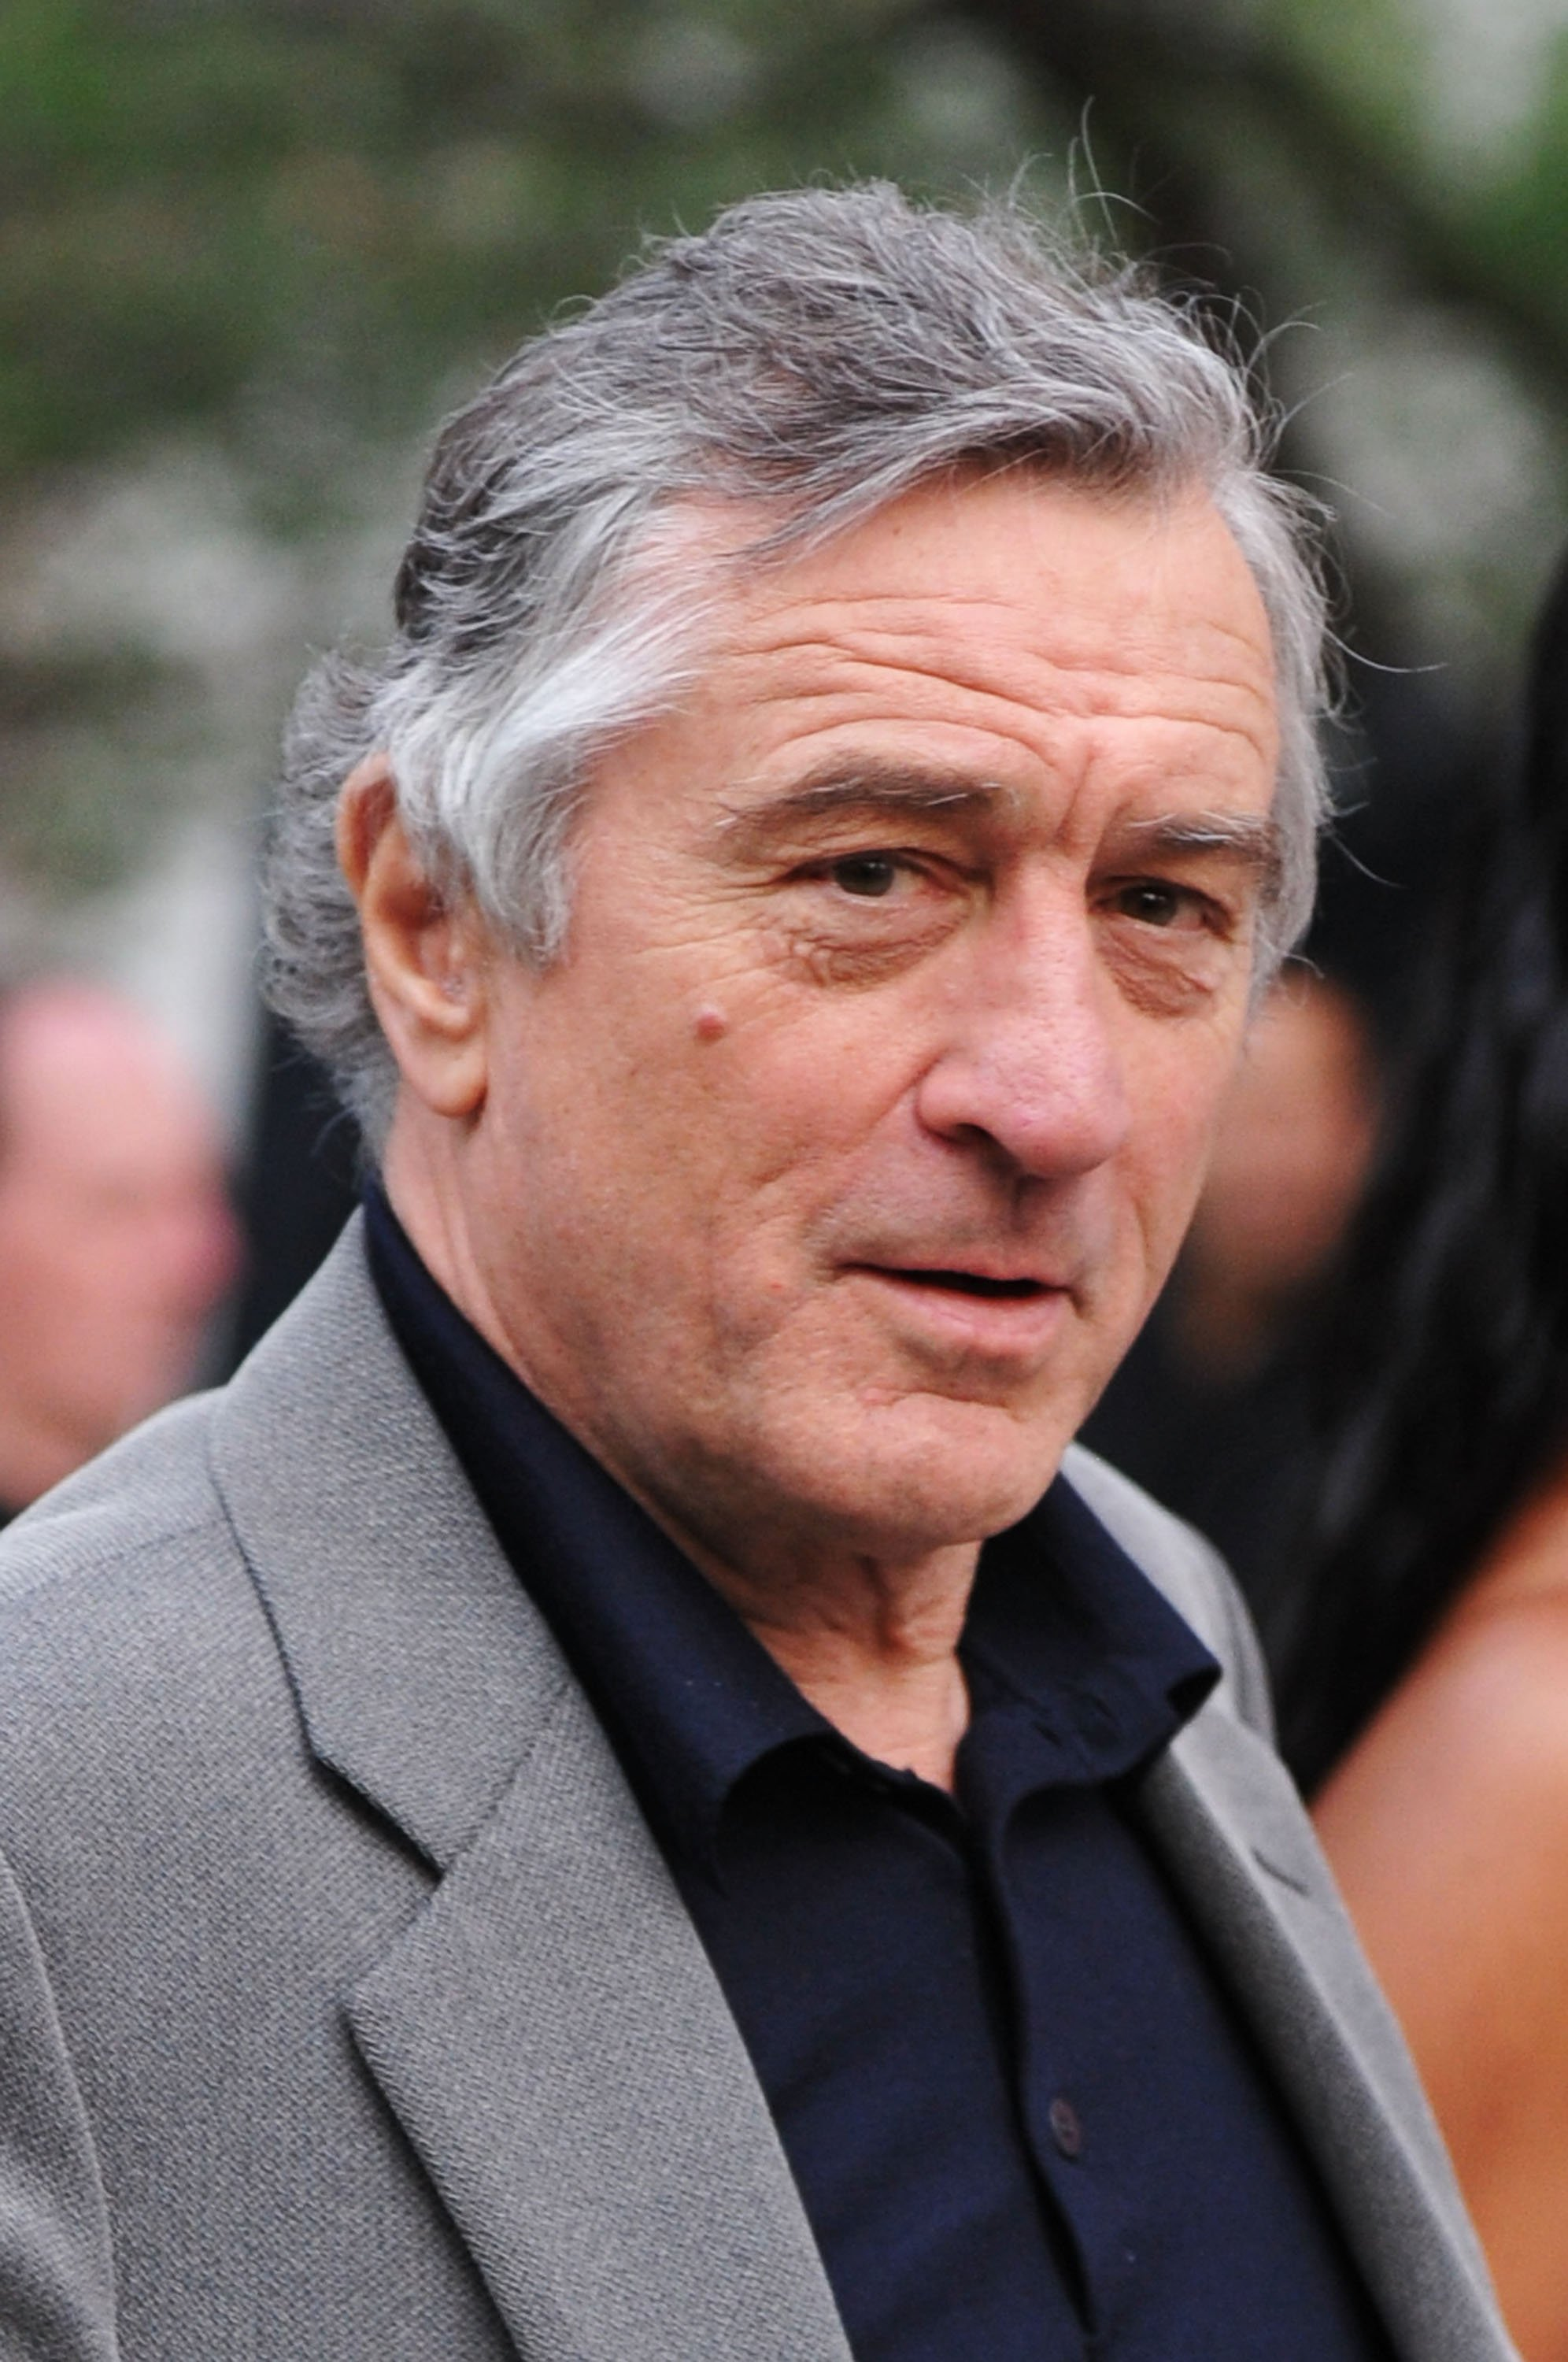 Robert De Niro at the Vanity Fair party on April 20, 2010 in New York City. | Source: Getty Images